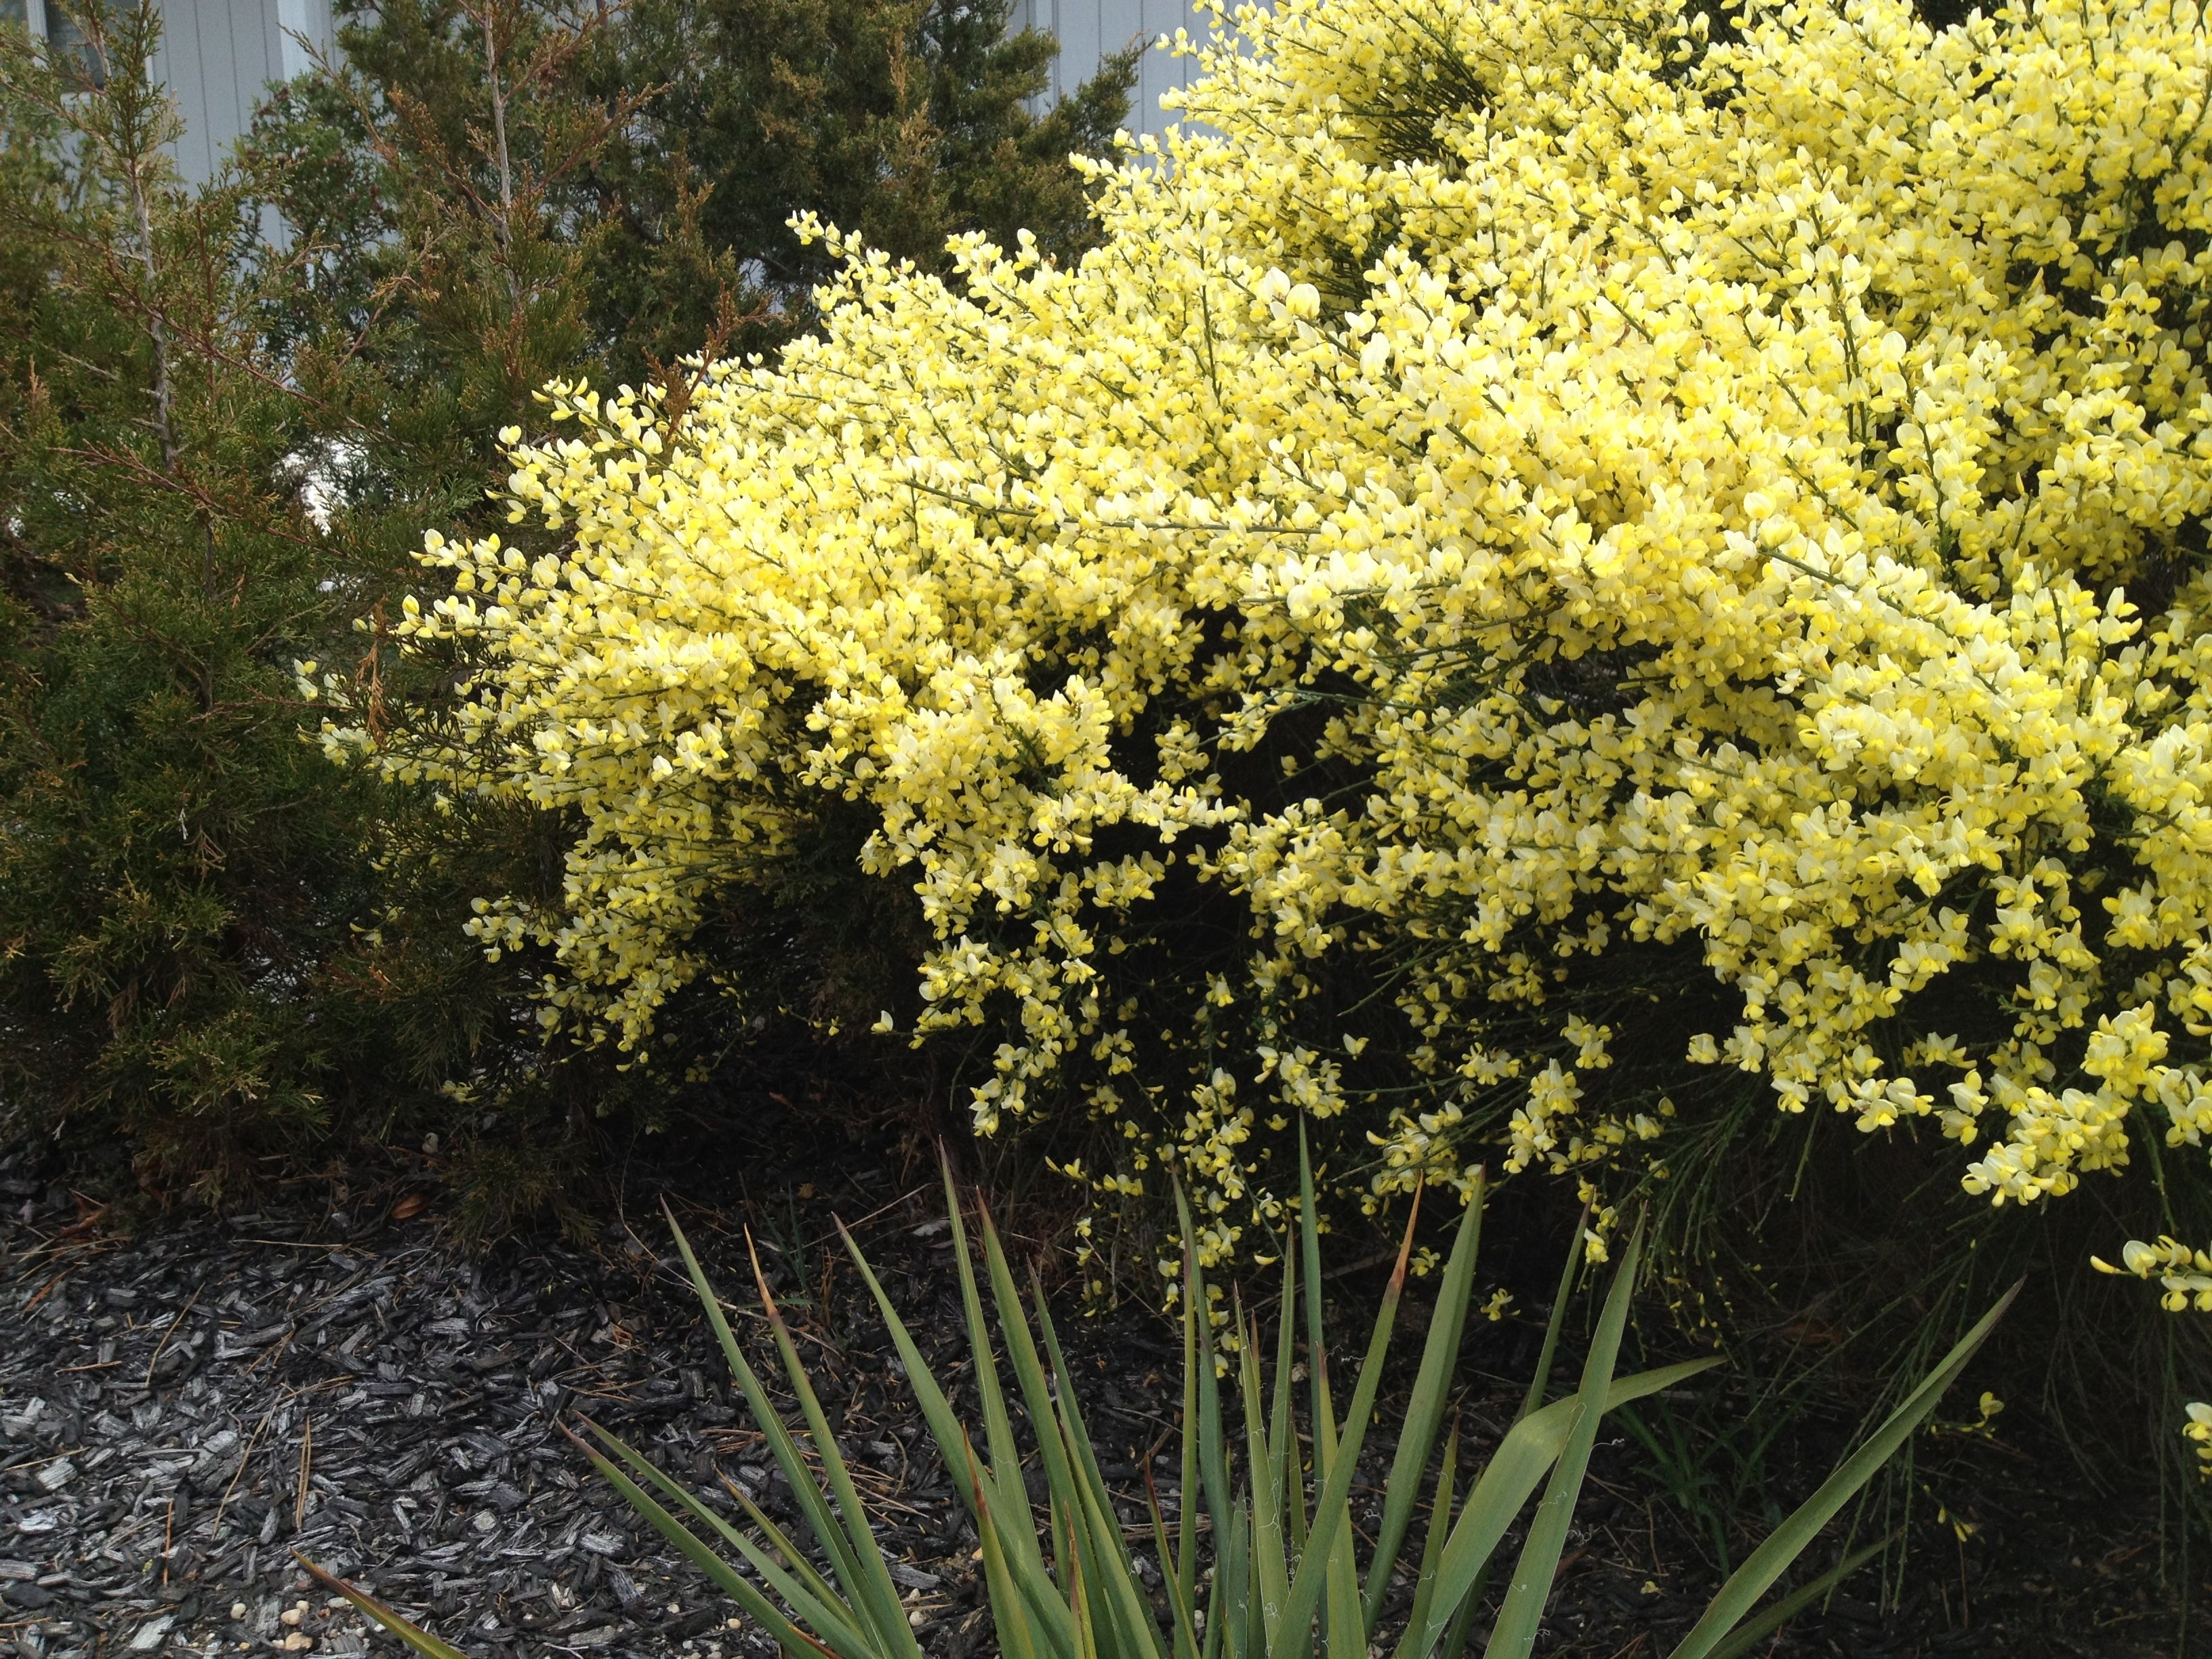 scotch broom in bloom give it a good haircut early spring every rh pinterest com